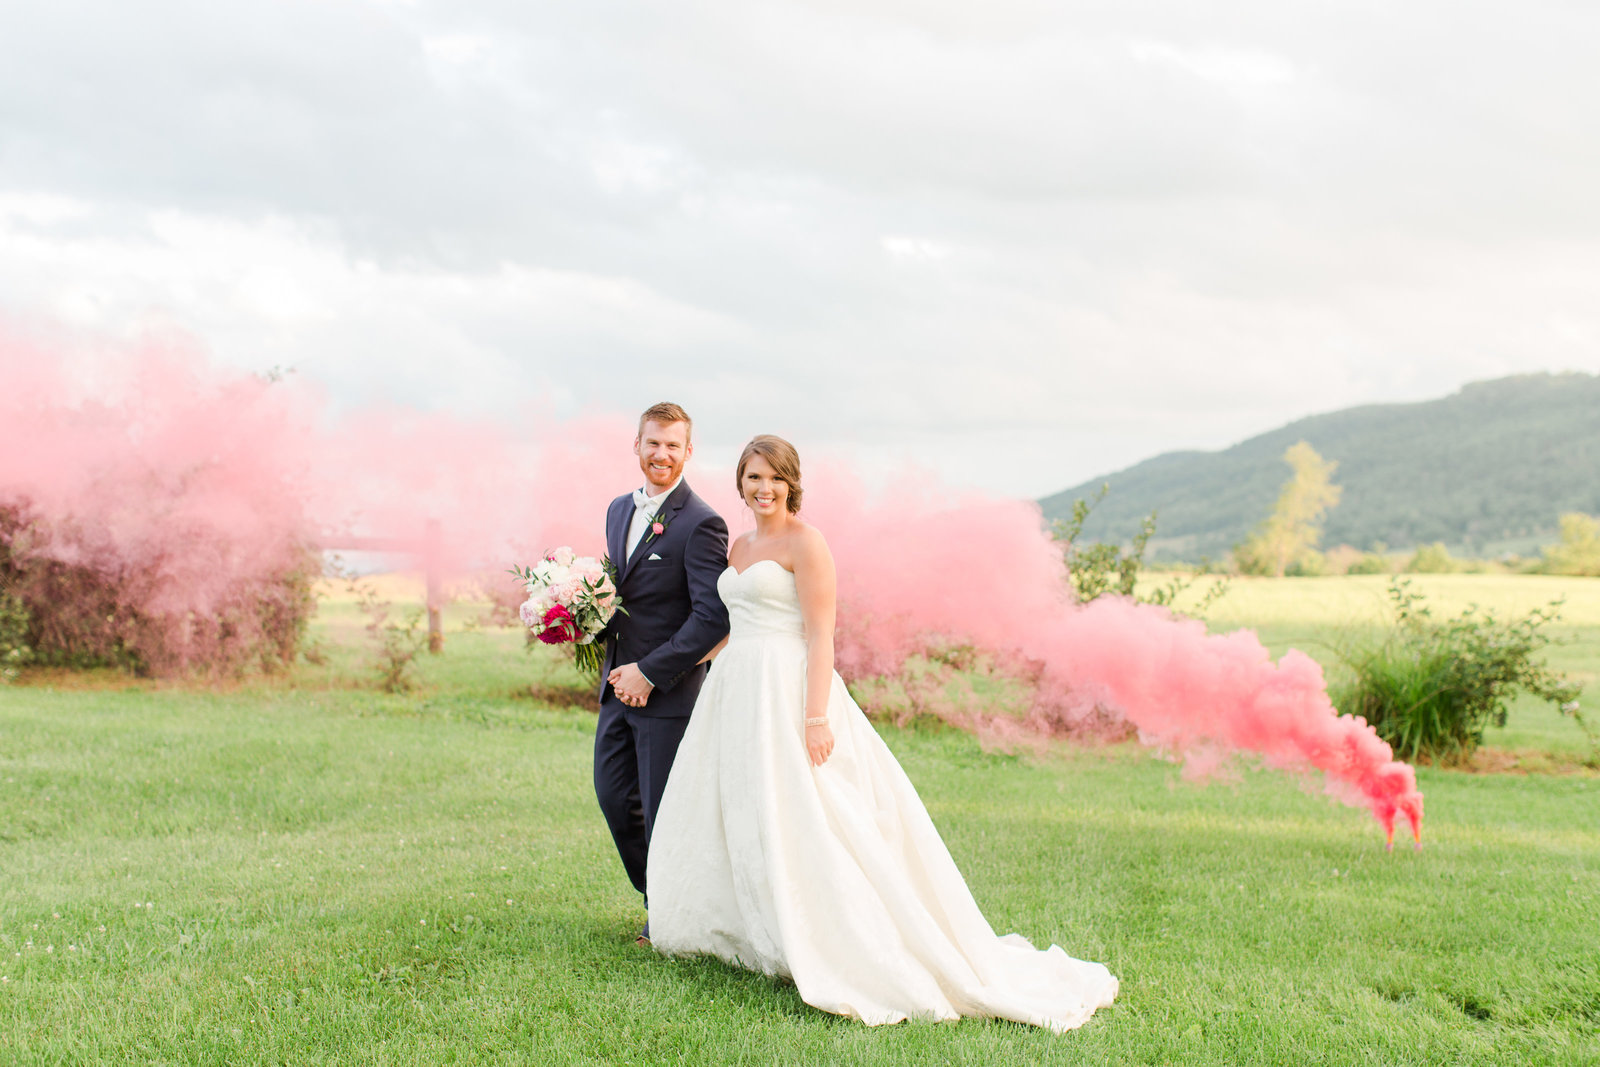 heilig-swift-level-farm-wv-wedding-bride-groom-bethanne-arthur-photography-photos-333